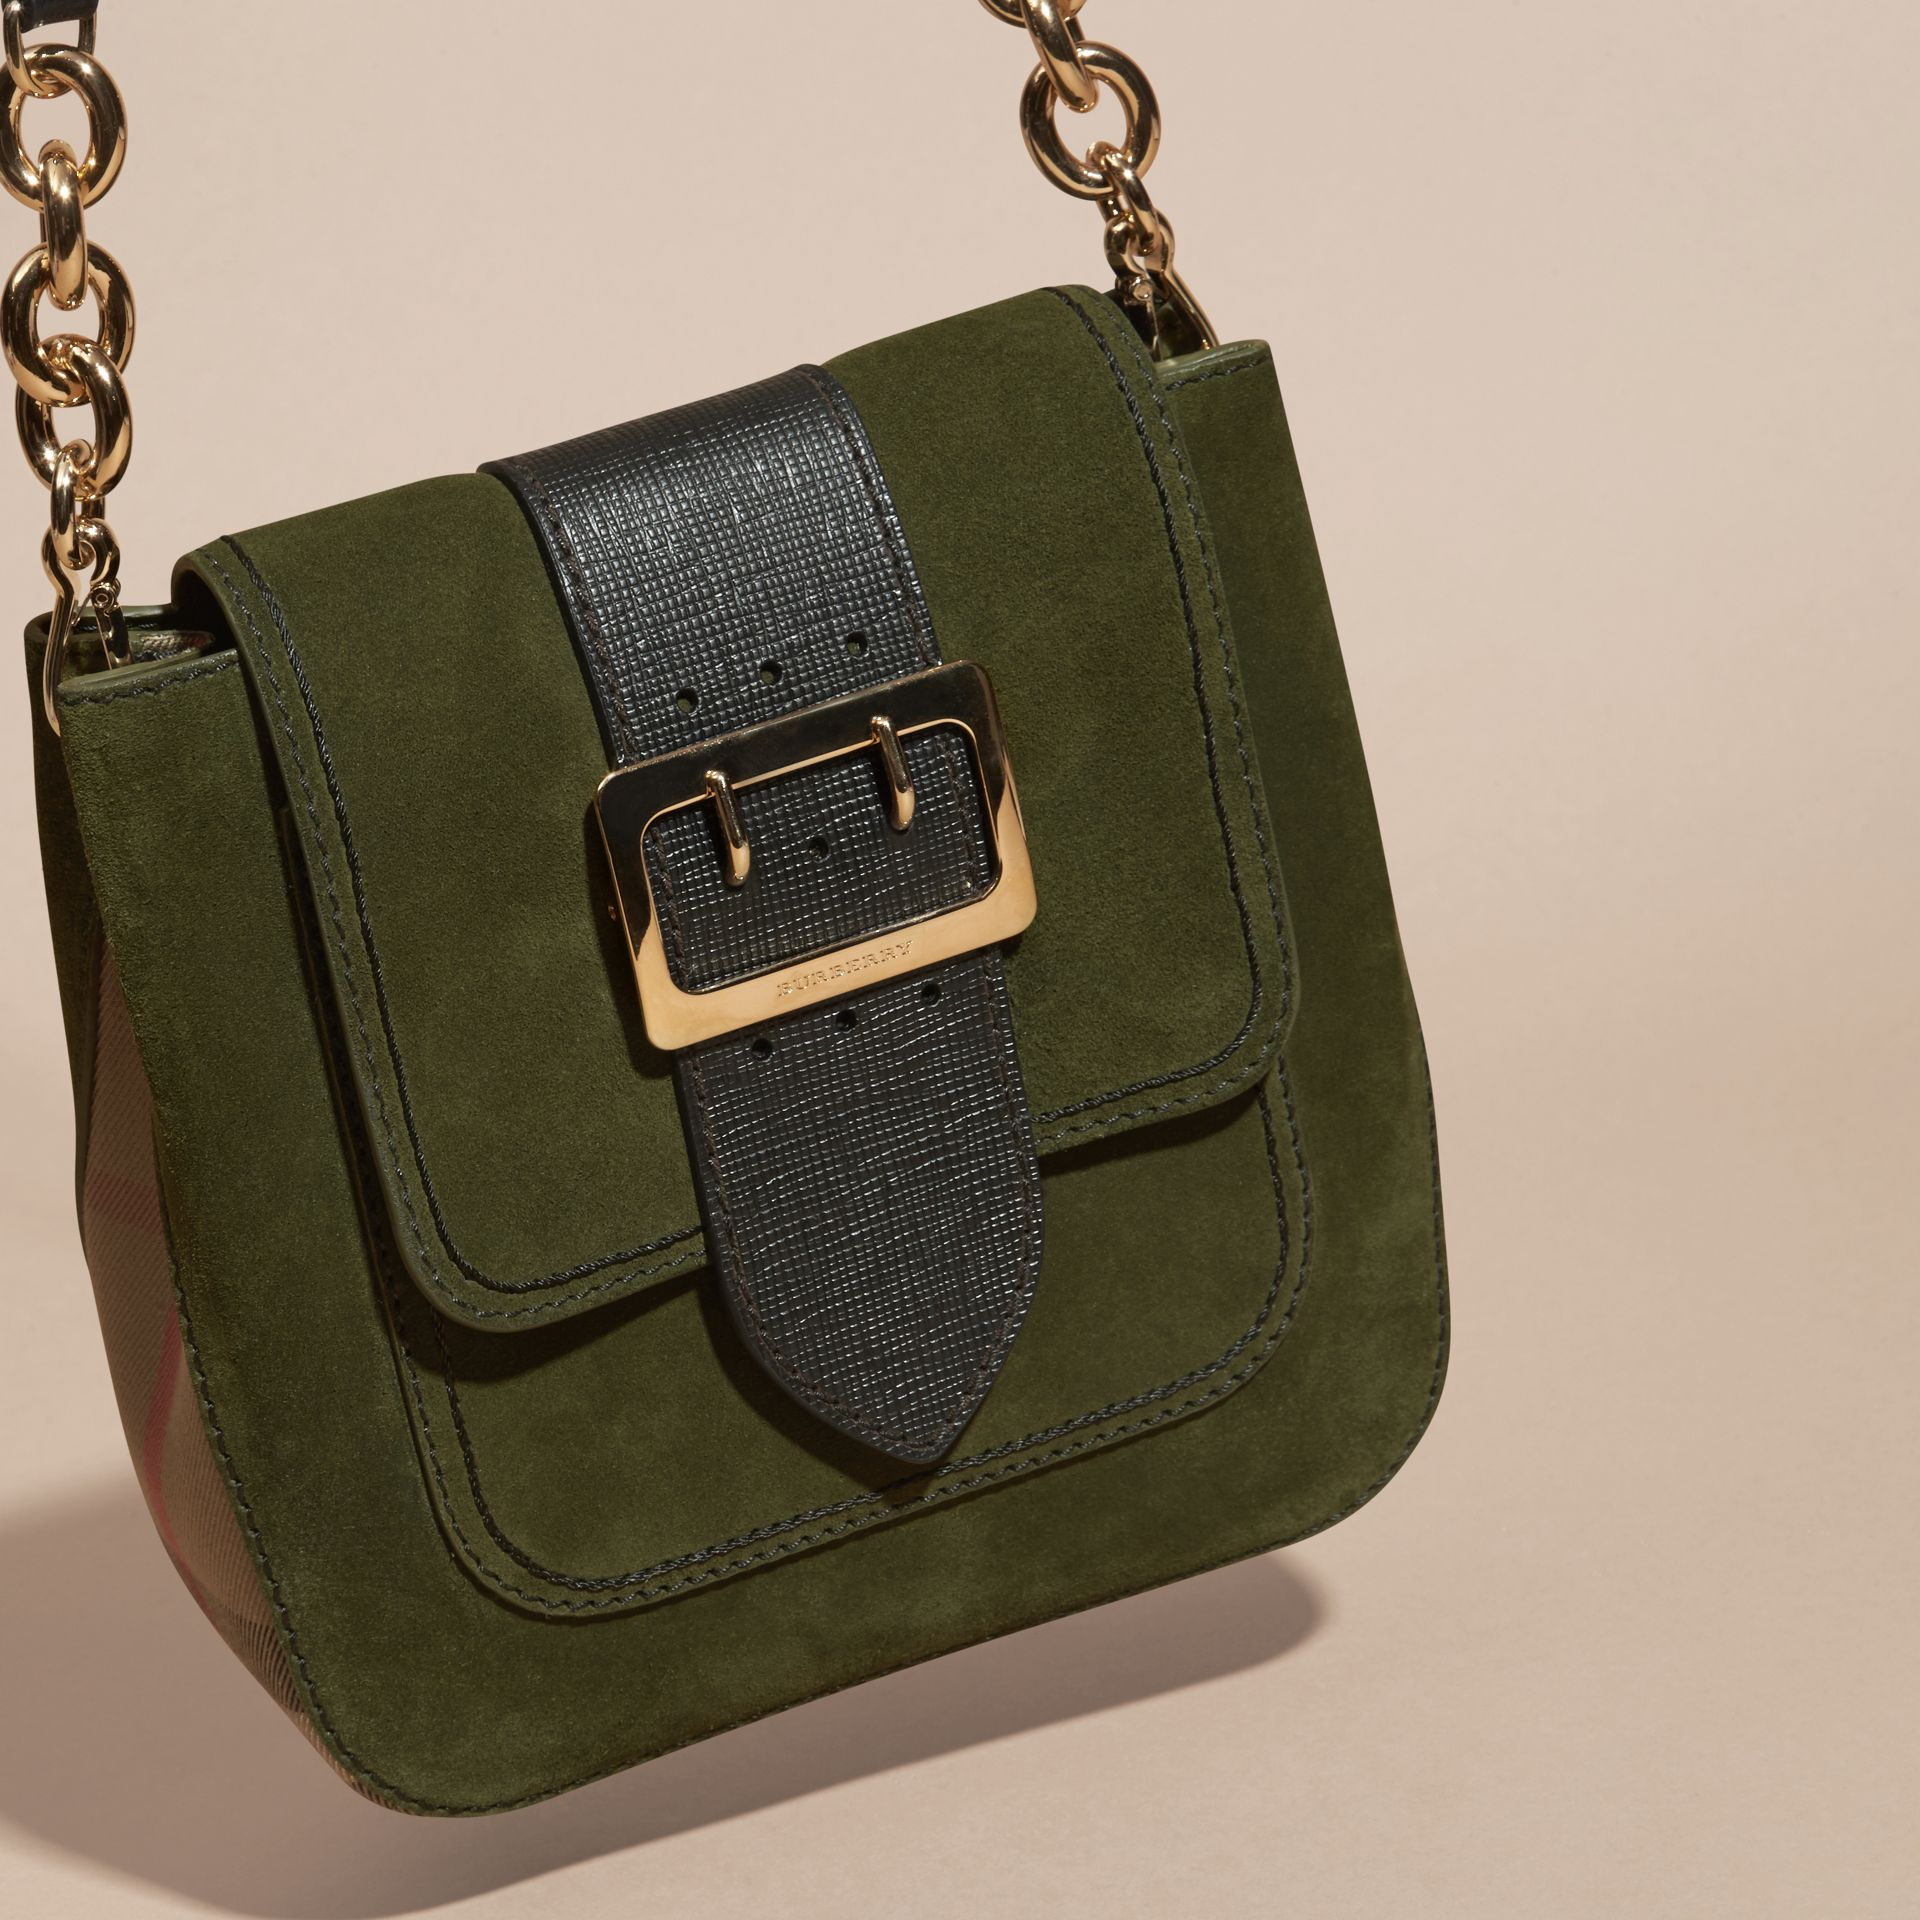 Verde militare Borsa The Buckle media quadrata in pelle scamosciata inglese e motivo House check - immagine della galleria 5